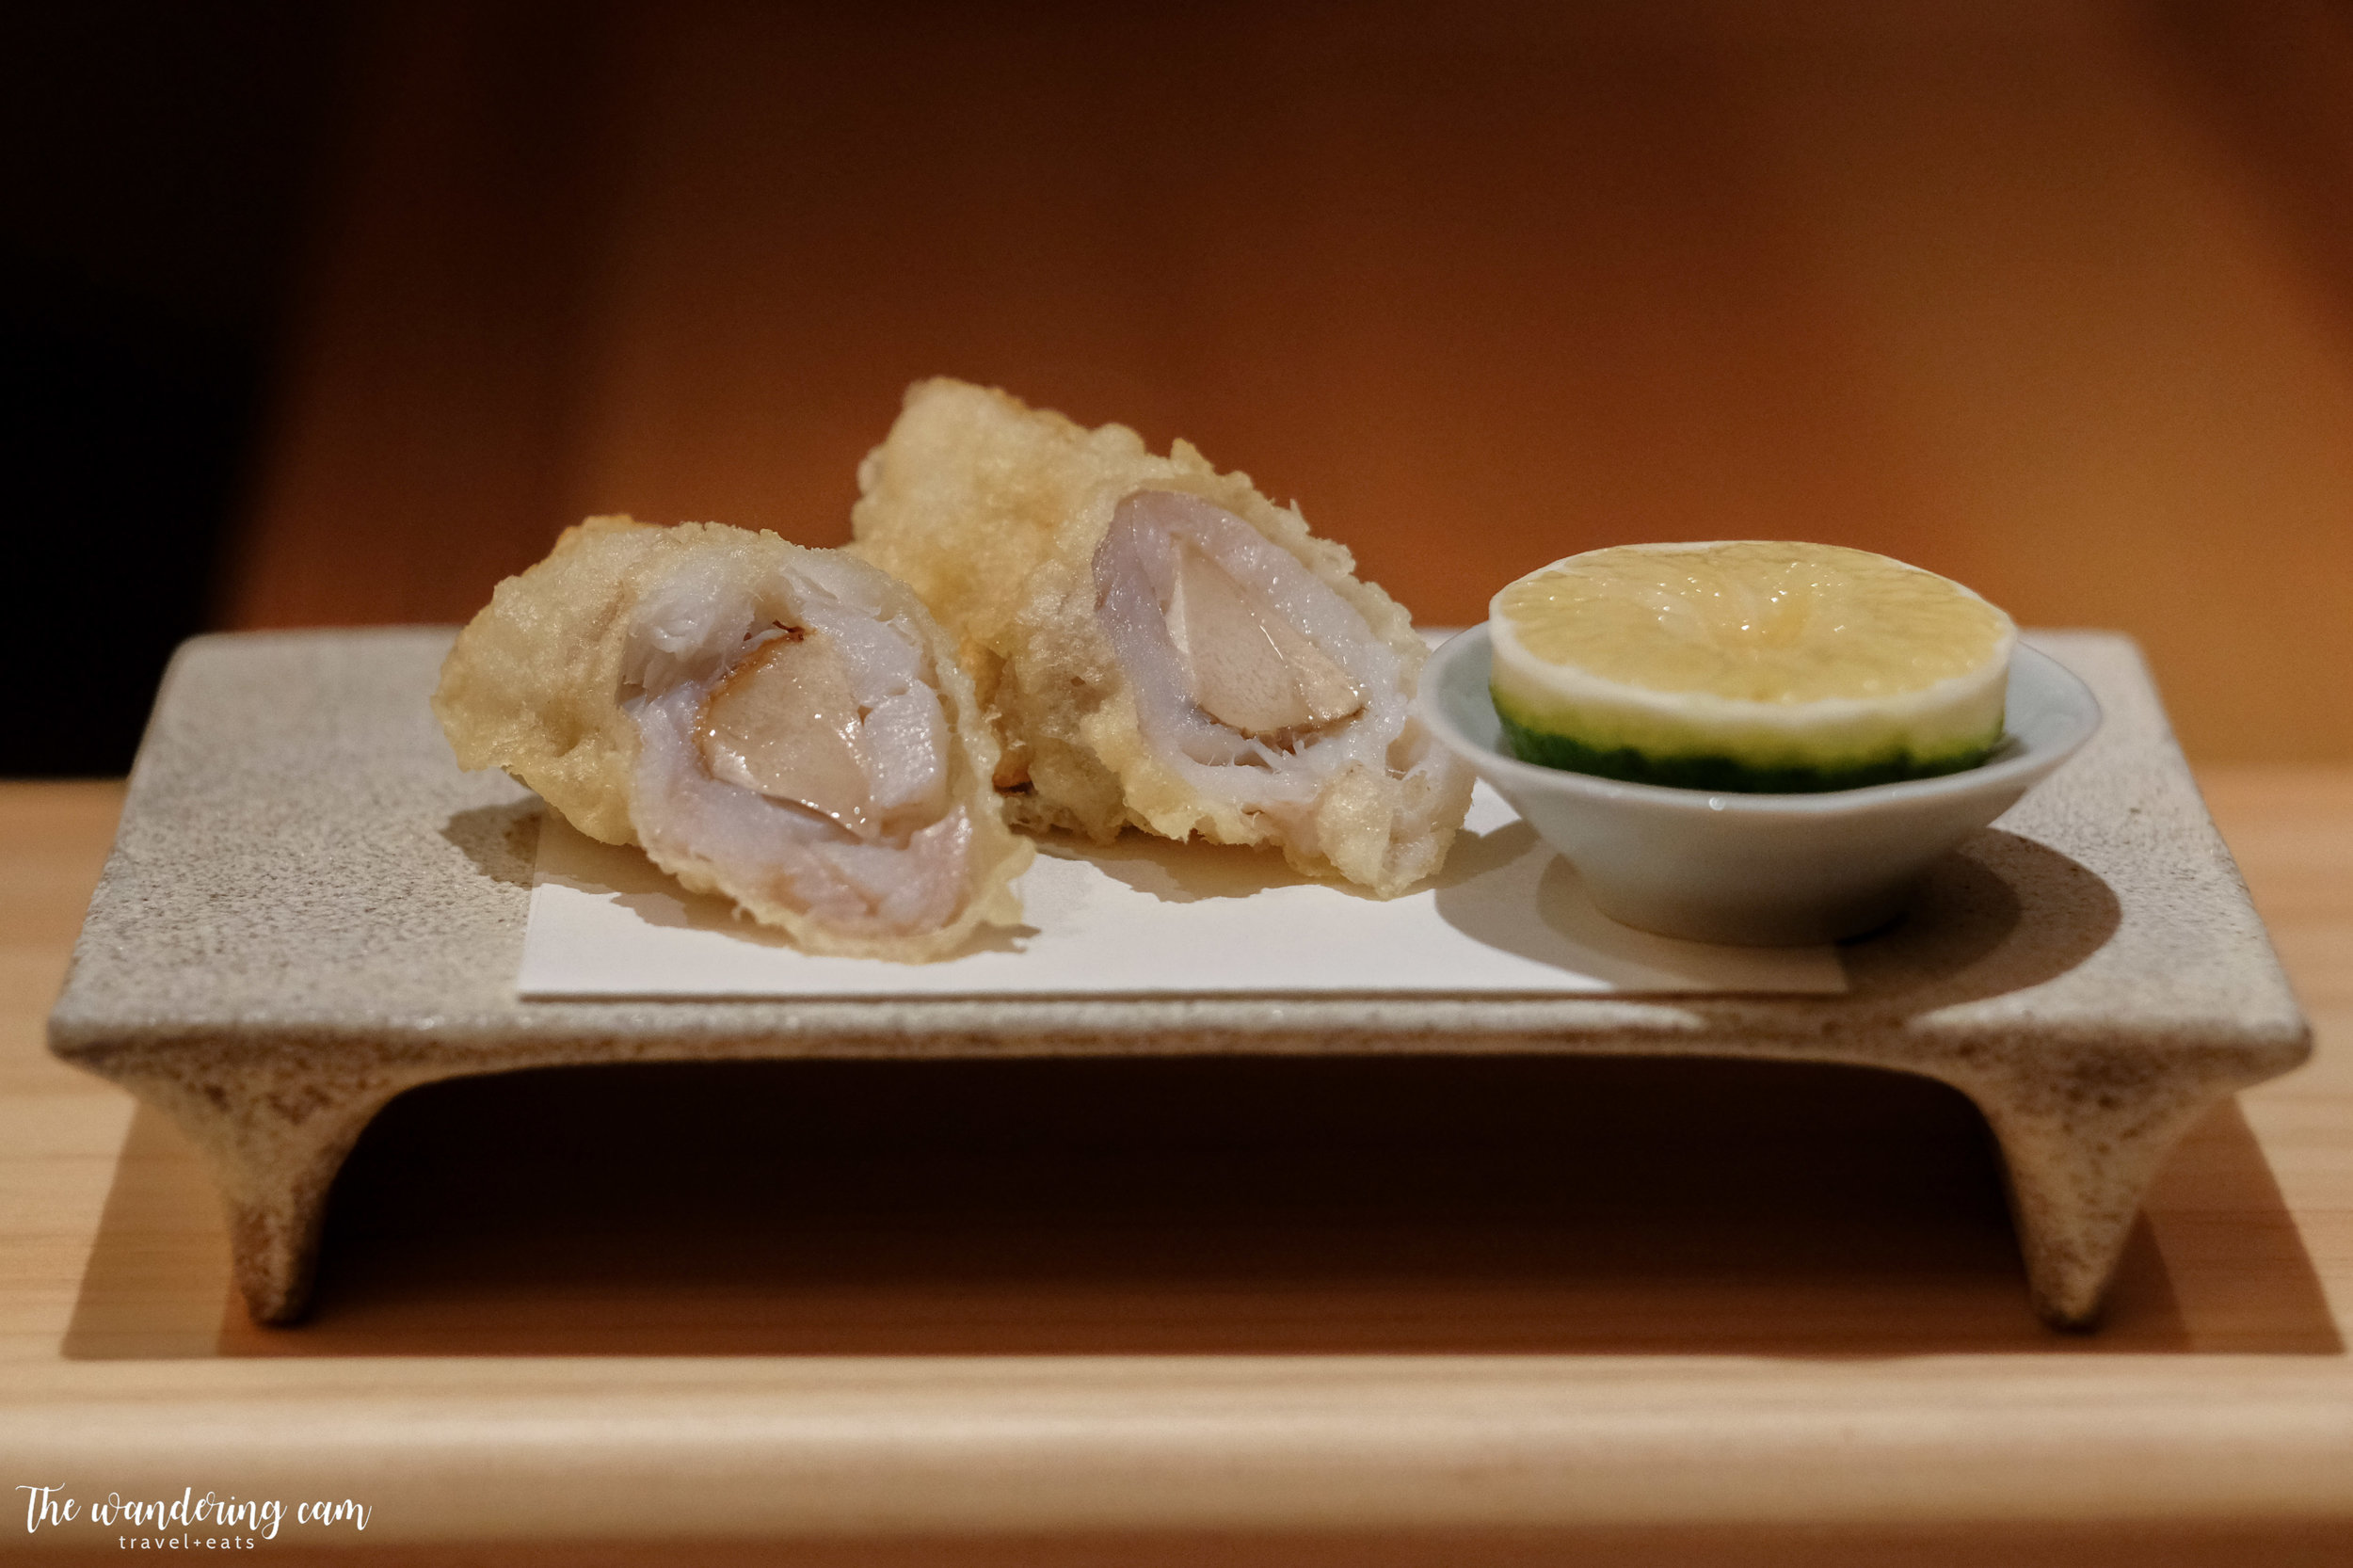 Tempura of mushroom wrapped in amadai fish - finish with a squeeze of lime